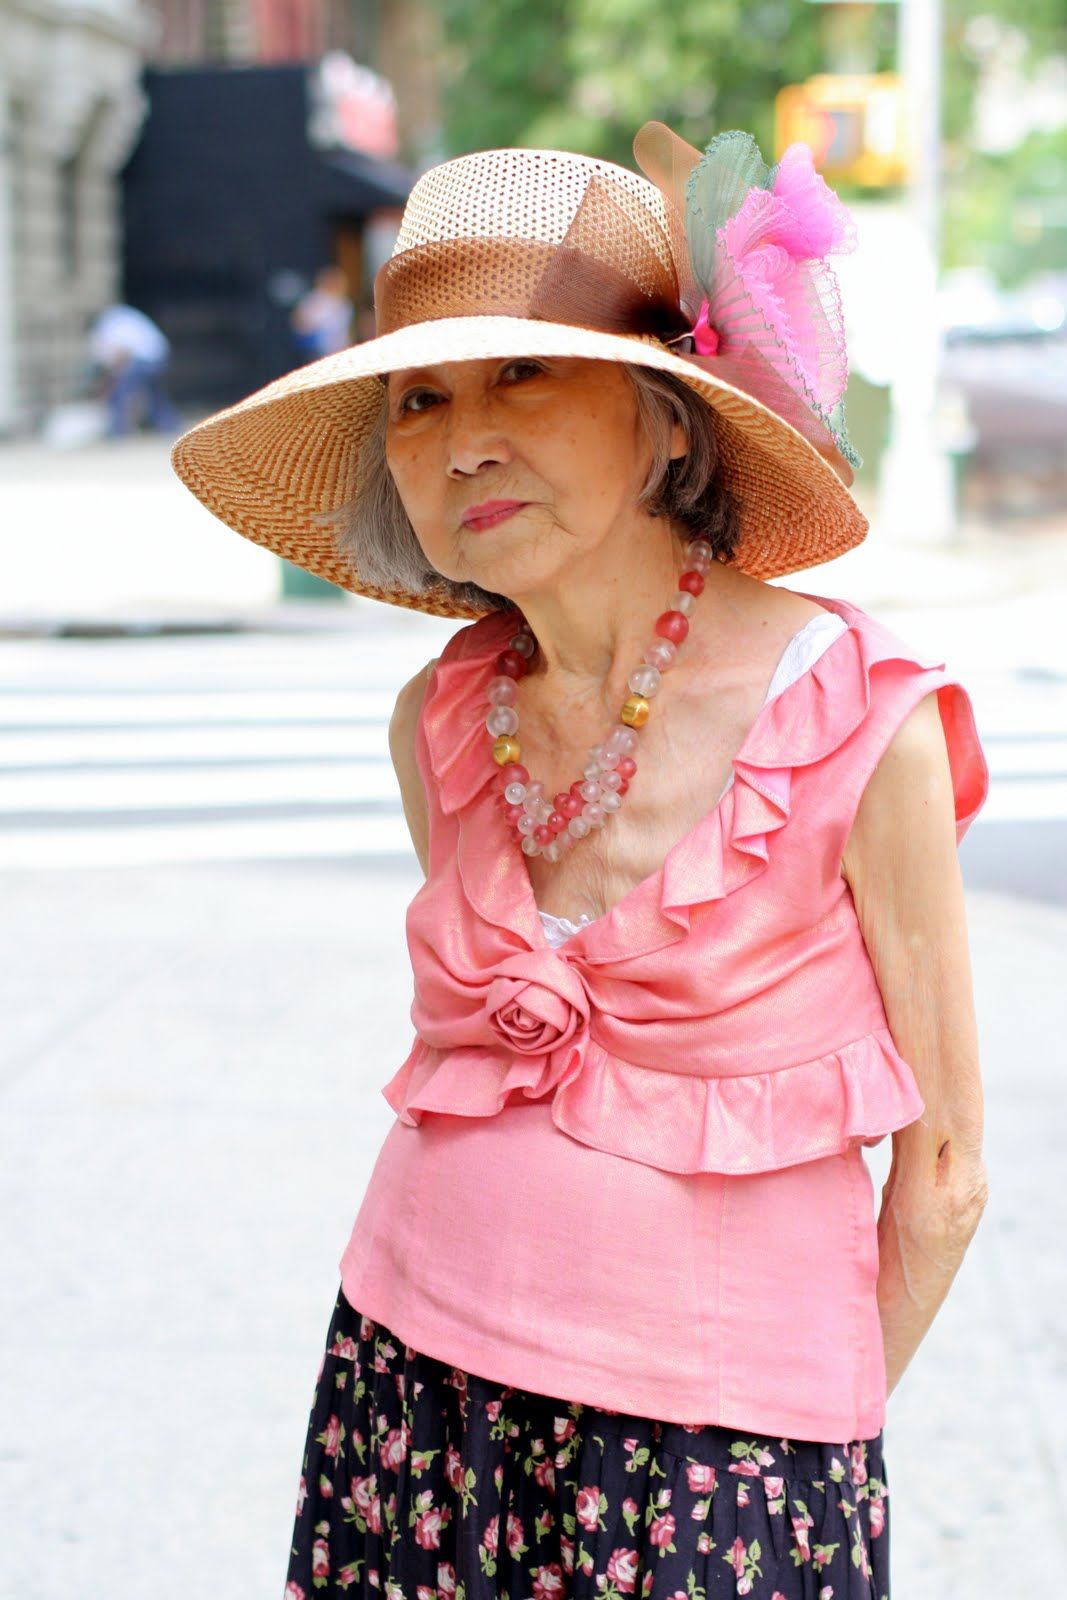 Embrace Your Age - this lovely lady is 80. Young at heart ...